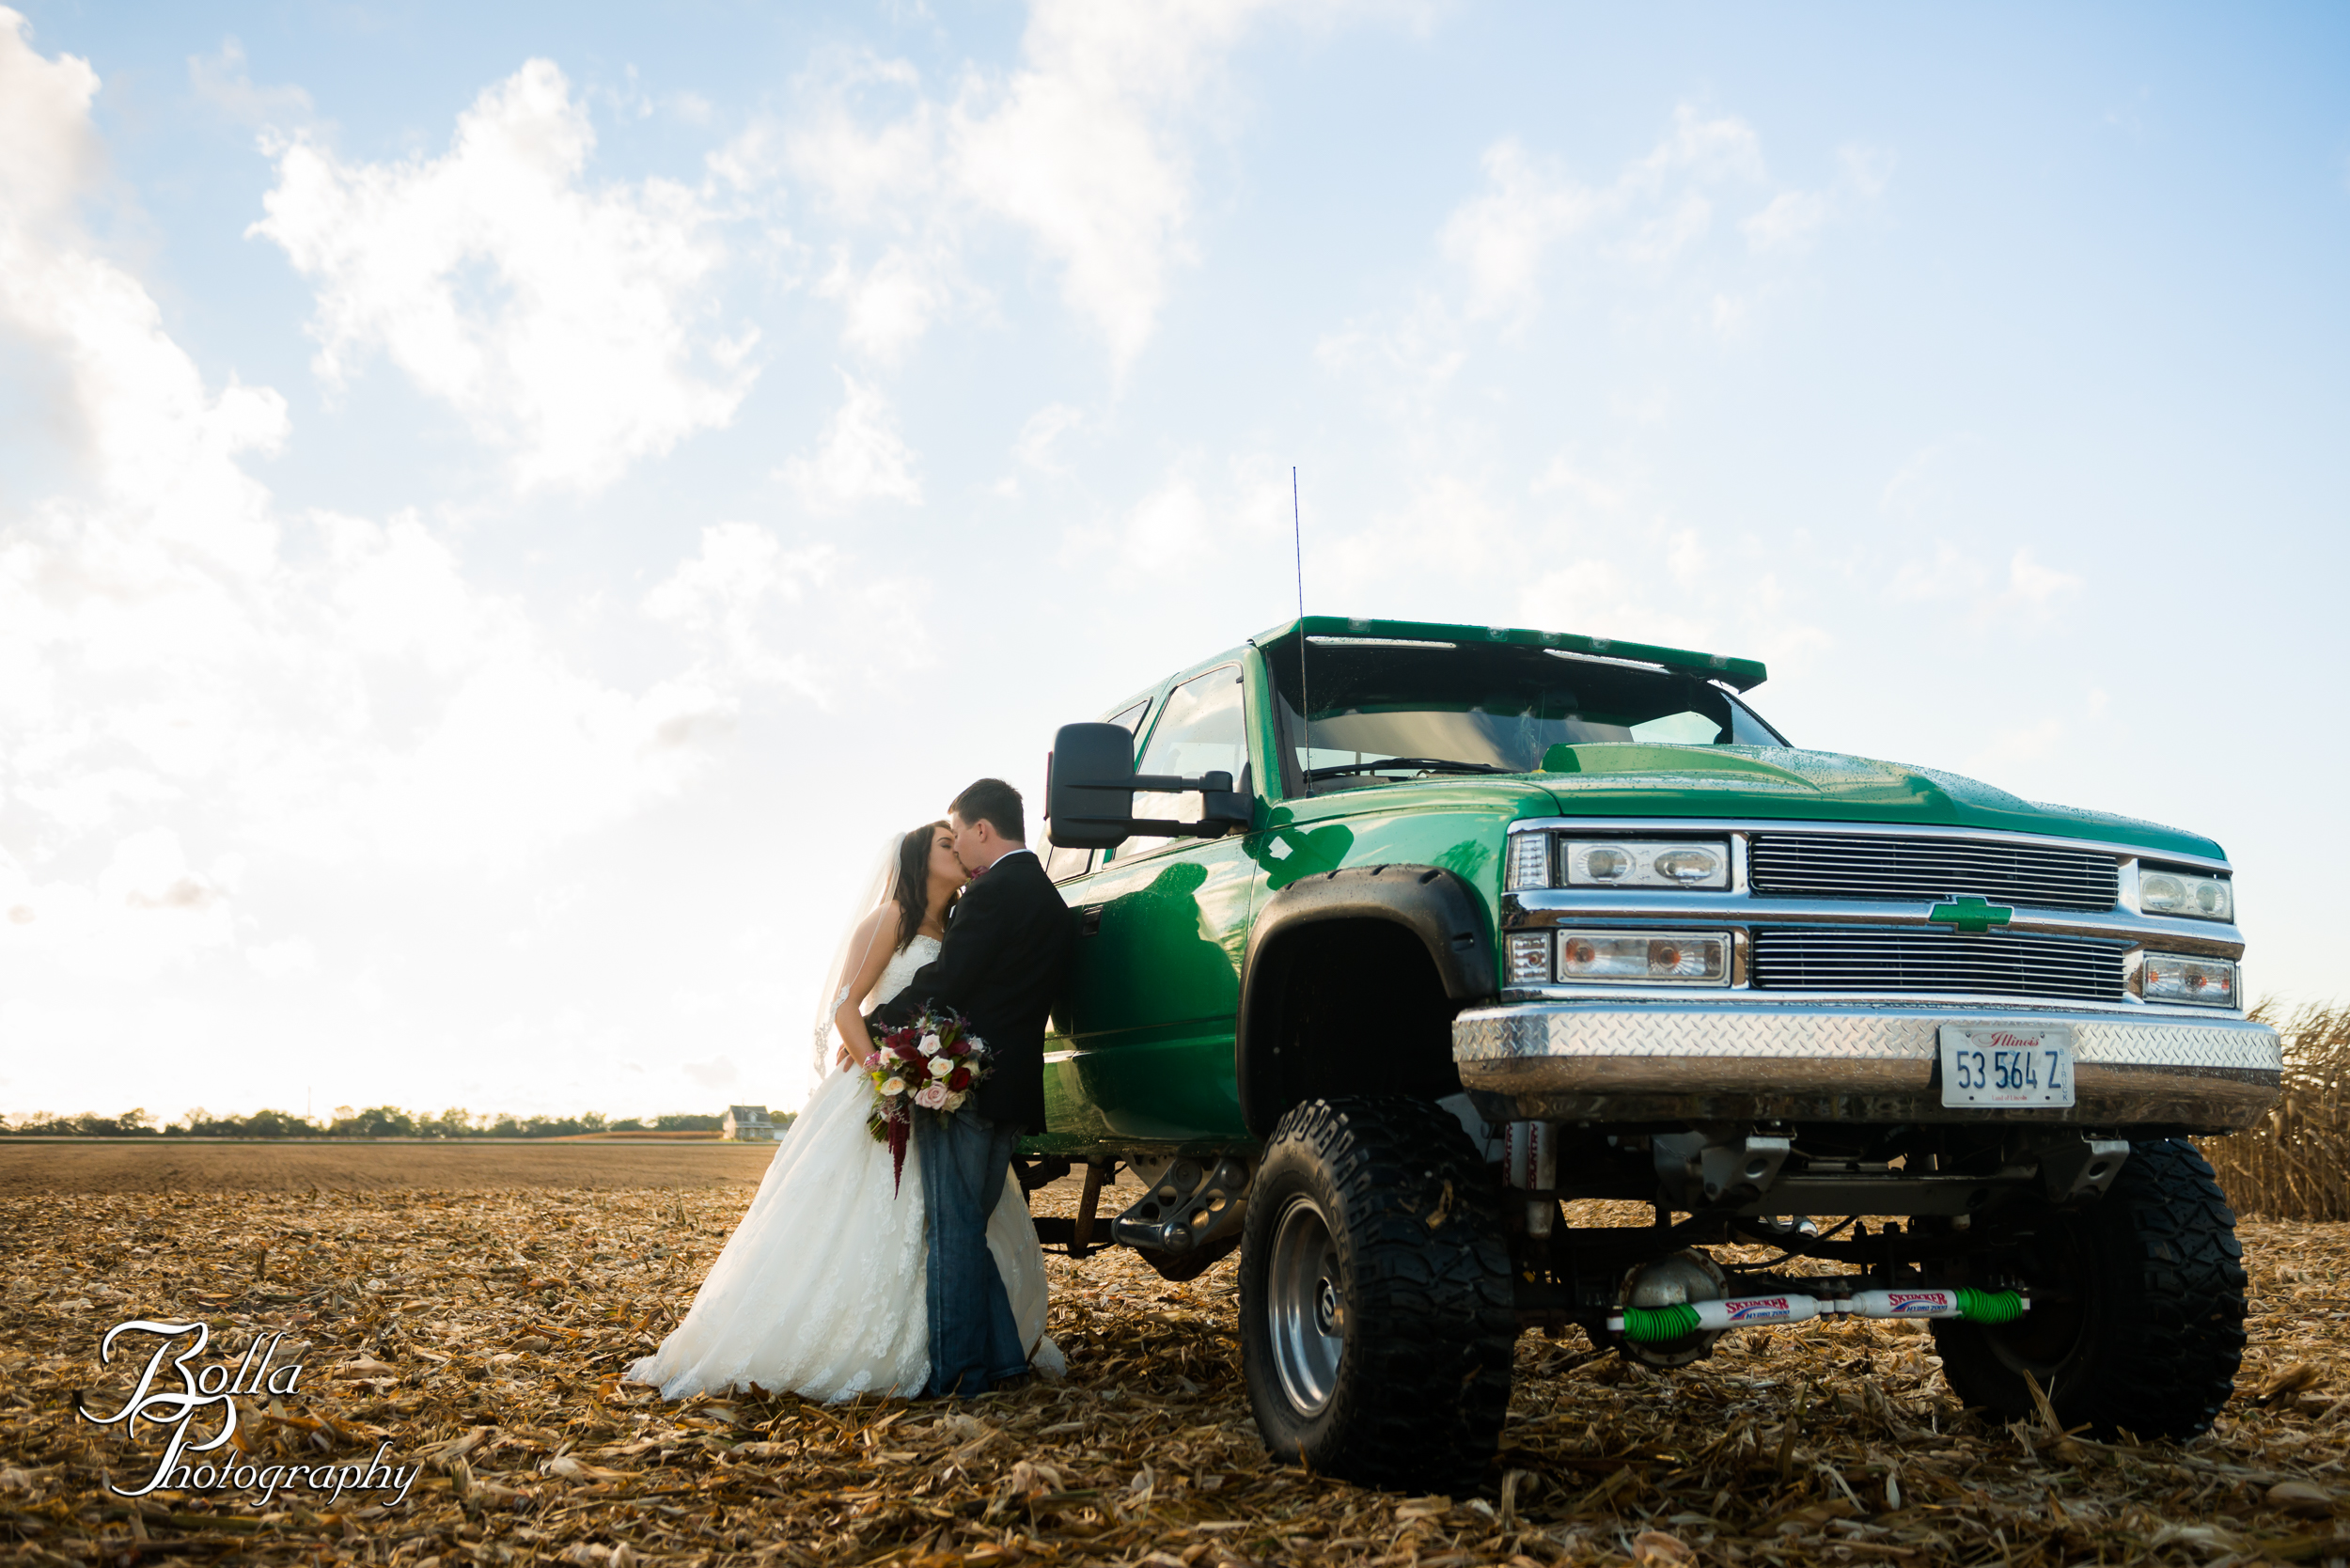 Bolla_photography_edwardsville_wedding_photographer_st_louis_weddings_Amber_Korsmeyer_Kyle_Gruner_Schwarz_Barn_blue_jeans_pickup_truck_autumn-0003.jpg